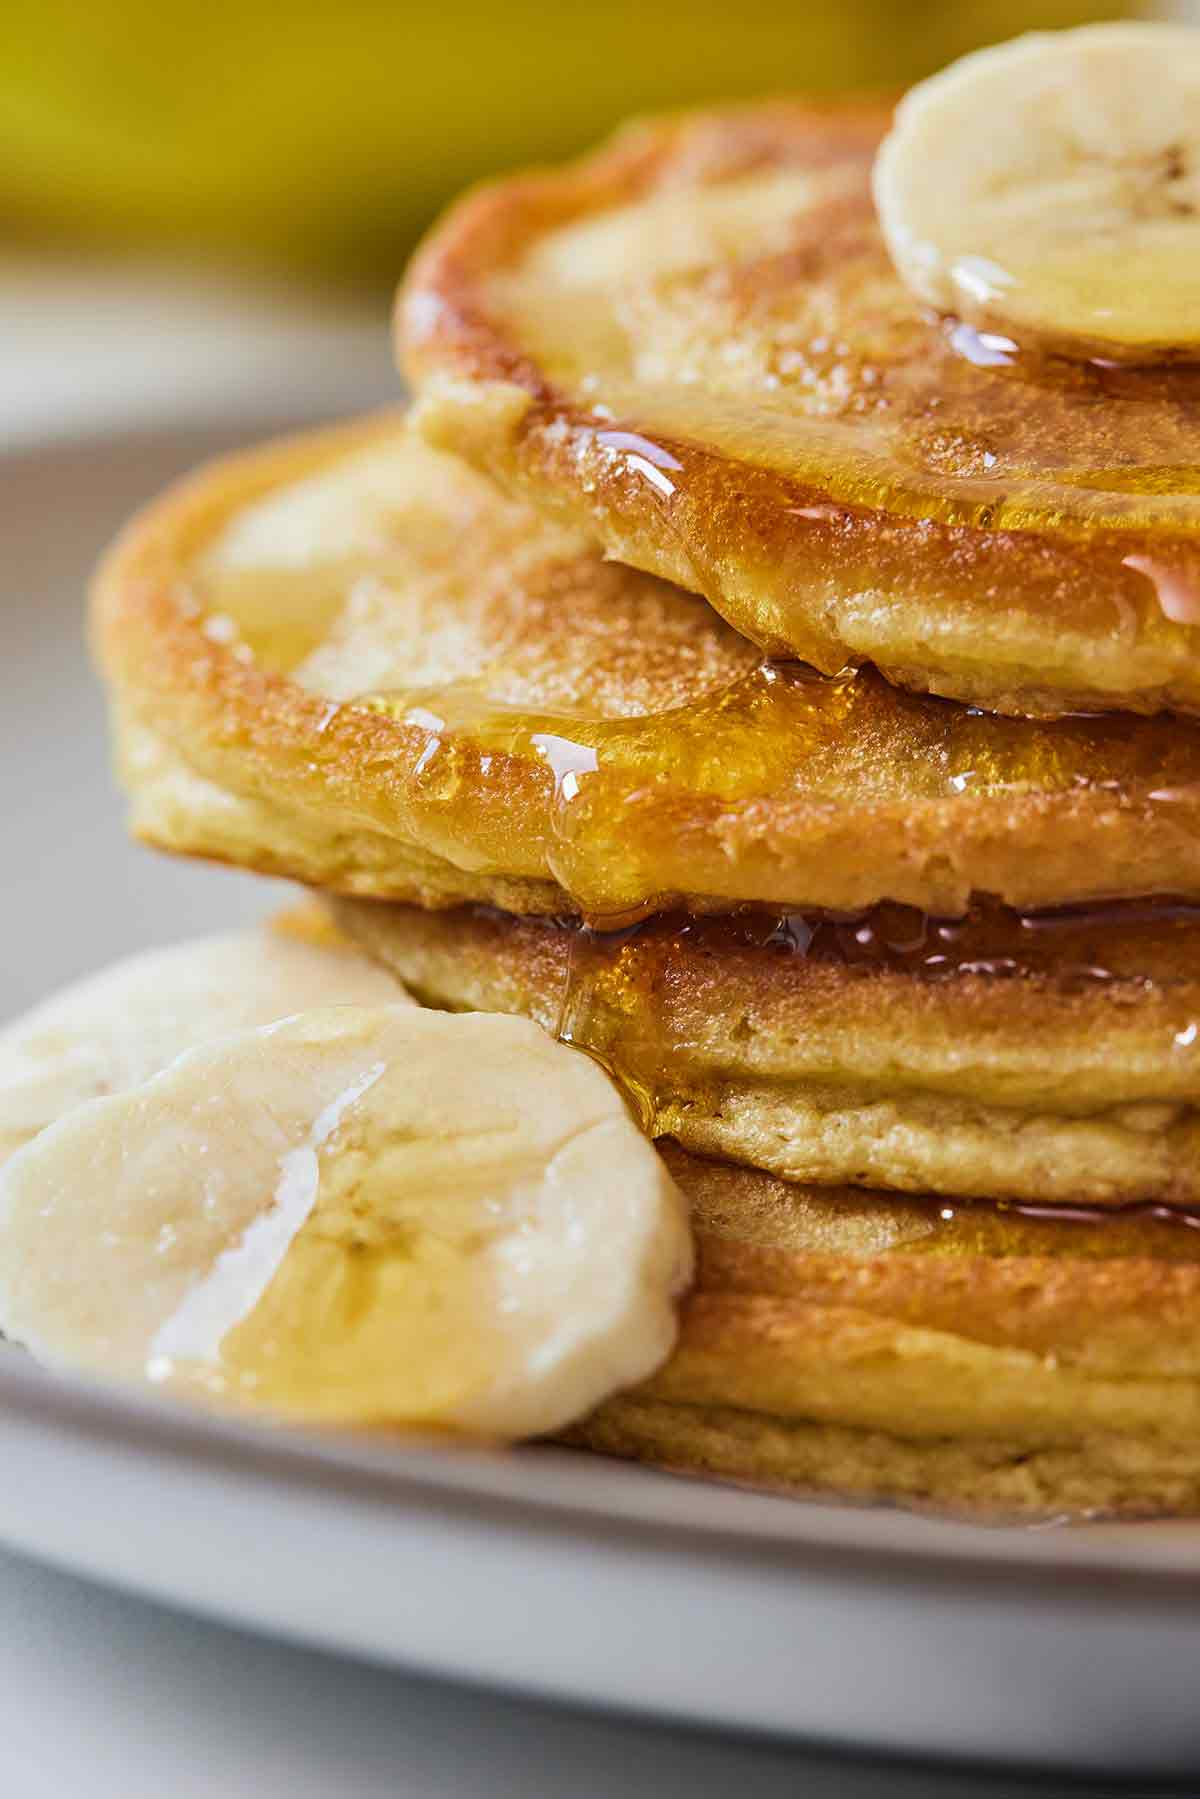 Close up of a stack of four pancakes with syrup dripping down and slices of bananas around.